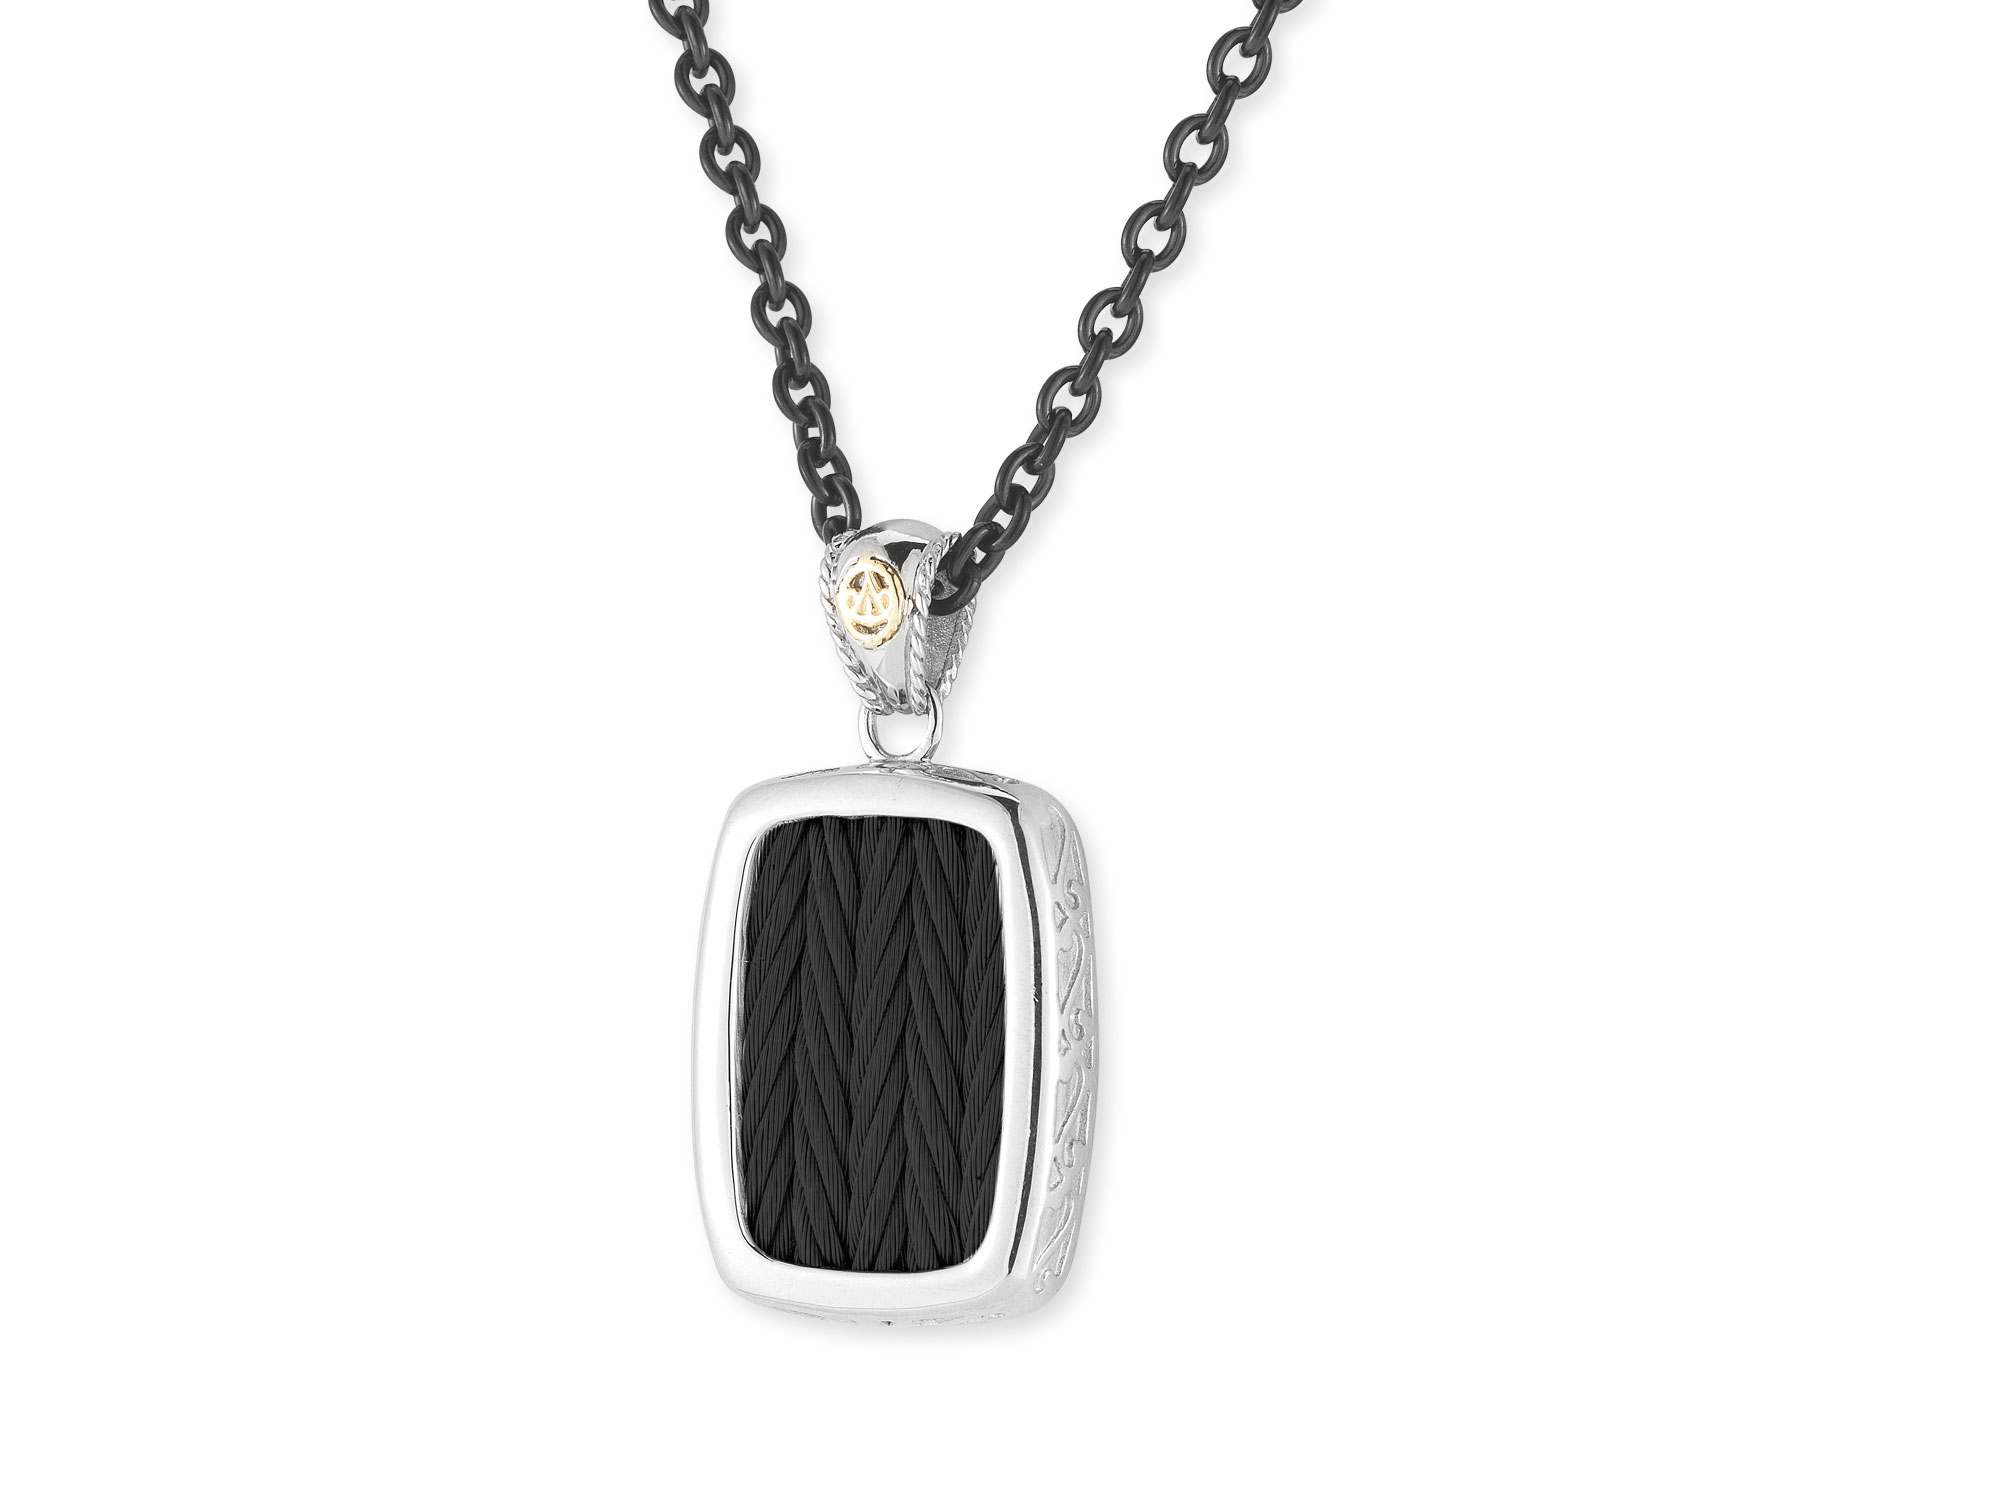 Black Cable Pendant On Black Chain Necklace With 18Kt Yellow Gold With Most Popular Cable Chain Necklaces (View 5 of 25)